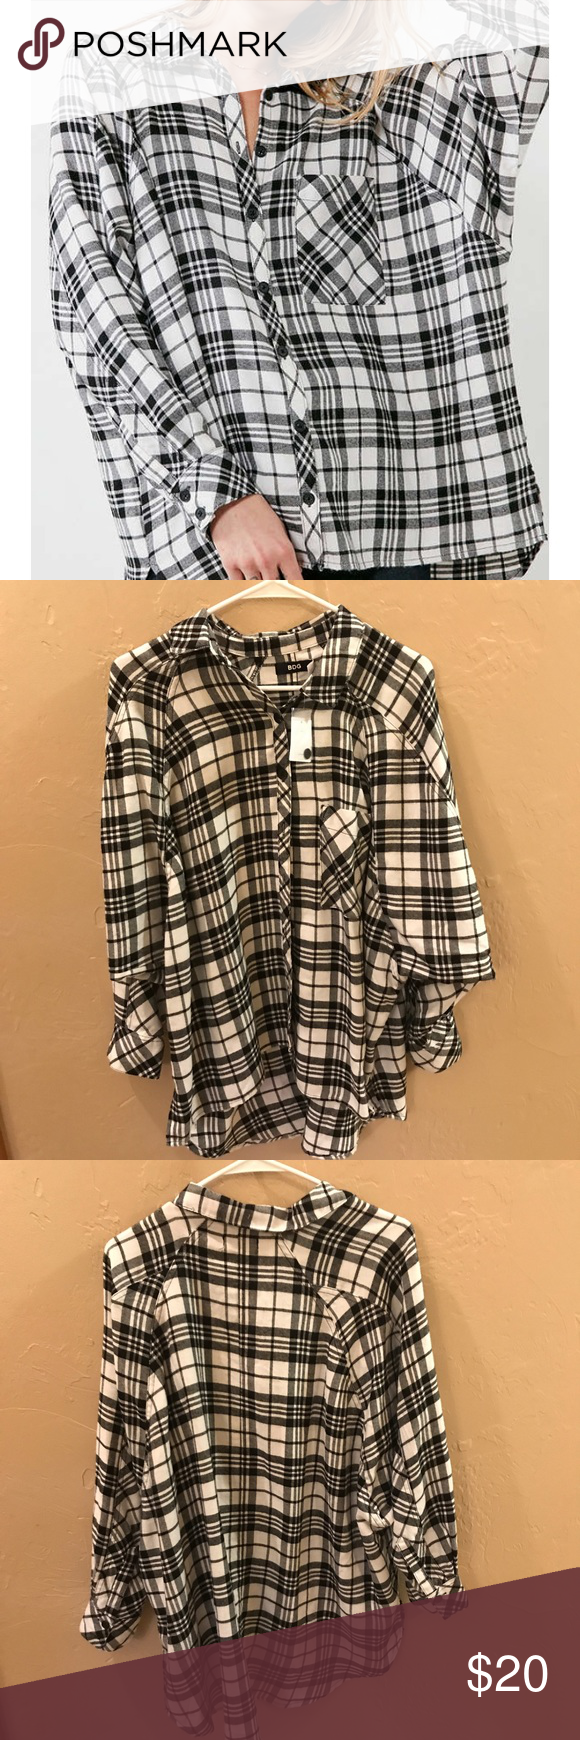 Flannel shirt knot  Urban outfitters bdg oversized flannel NWT  Oversized flannel